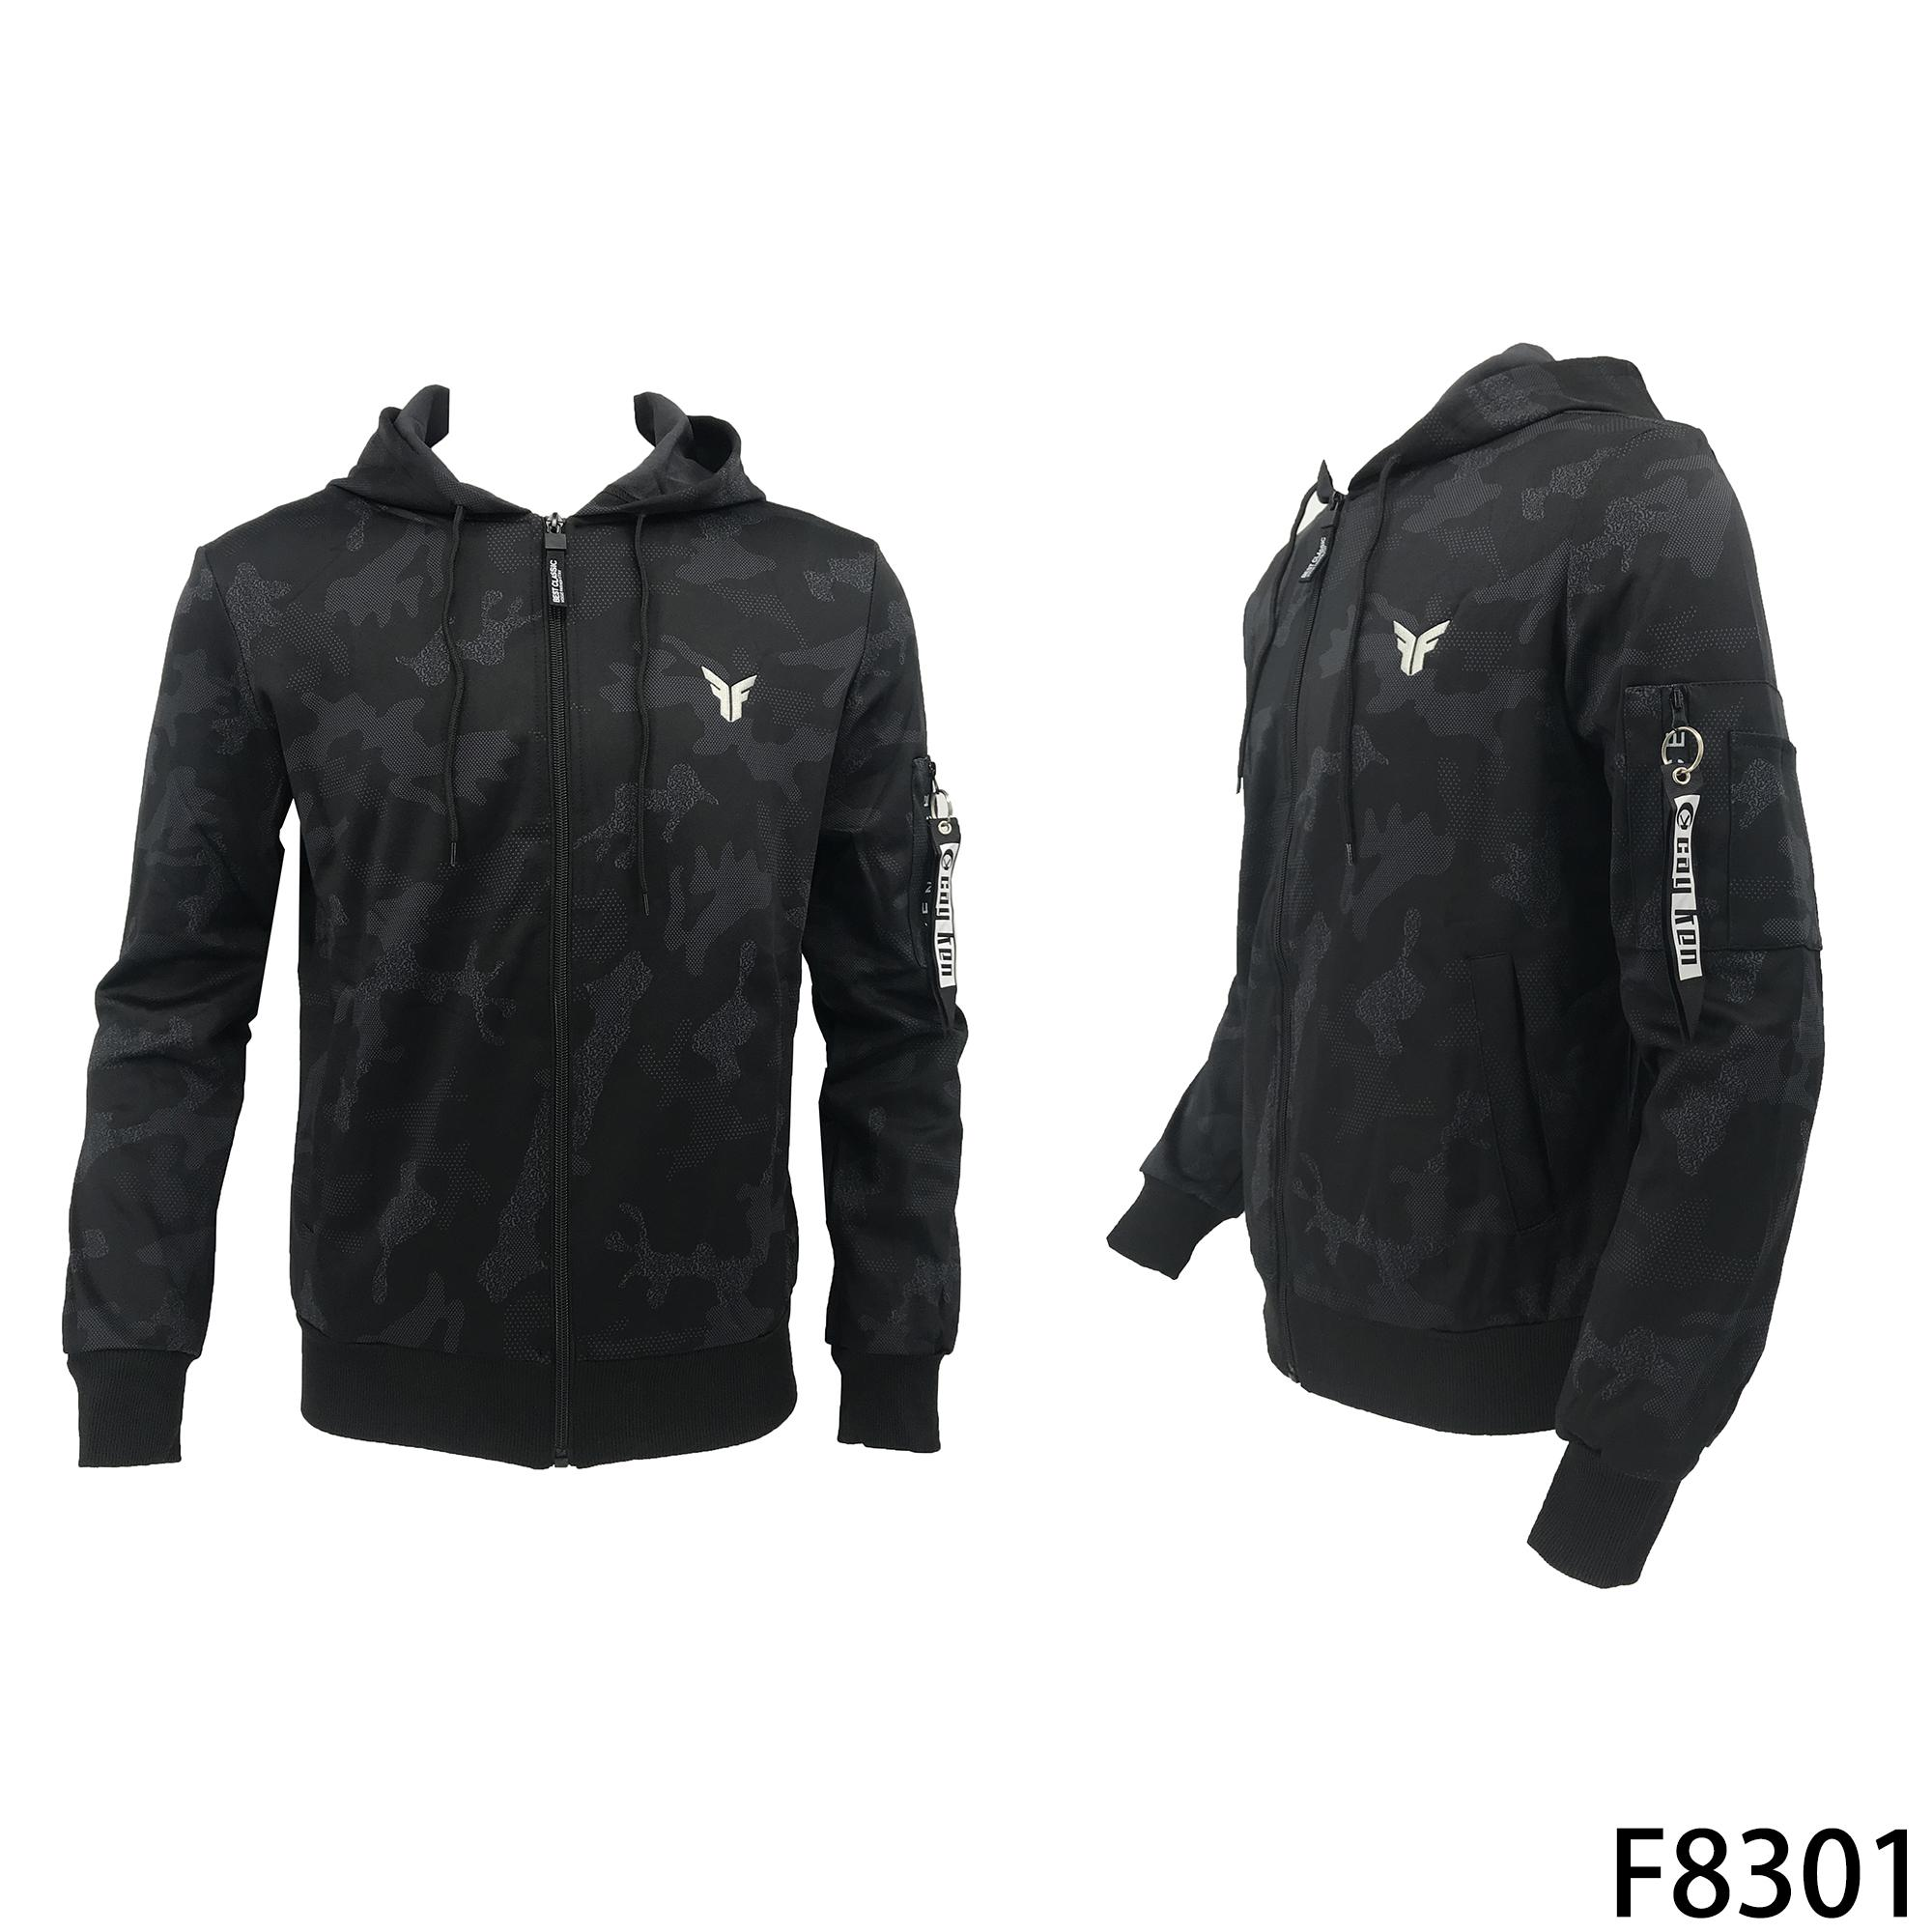 Jacket For Men High Grade Quality Ff F8301 By Cmb Merchandising.